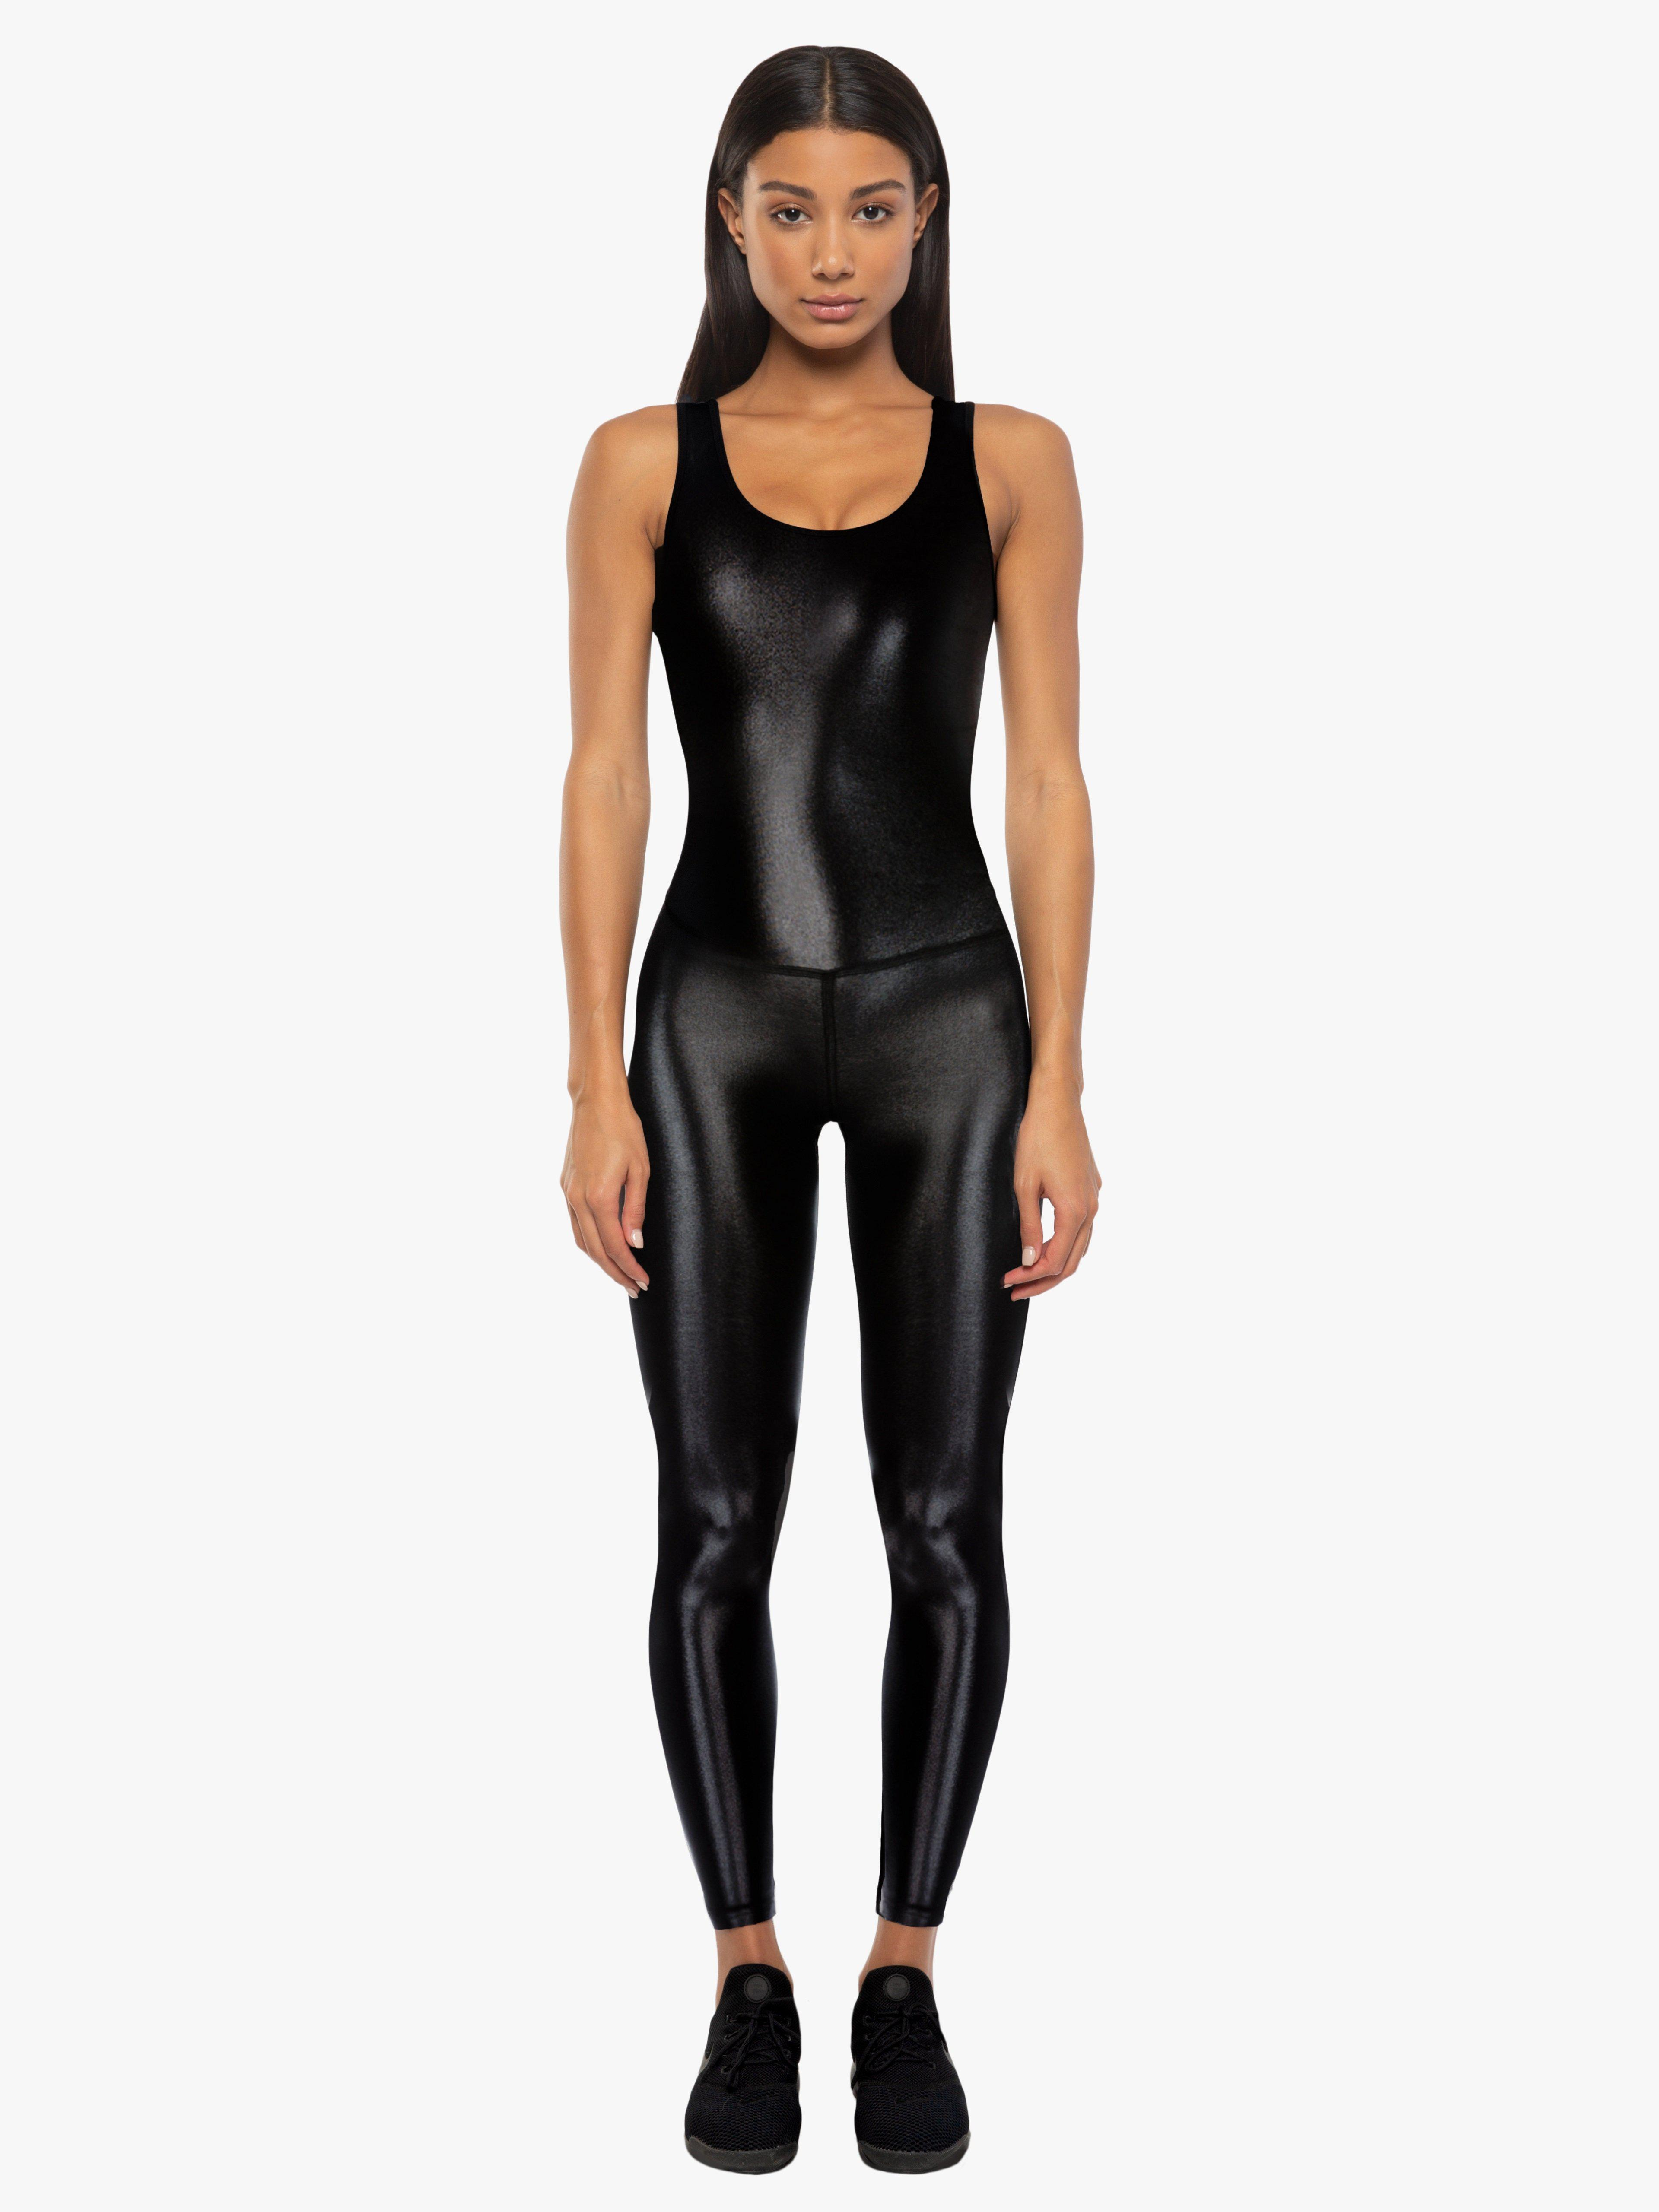 08d1a5279a53 Lyst - Koral Jet Infinity Jumpsuit - Black in Black - Save 11%